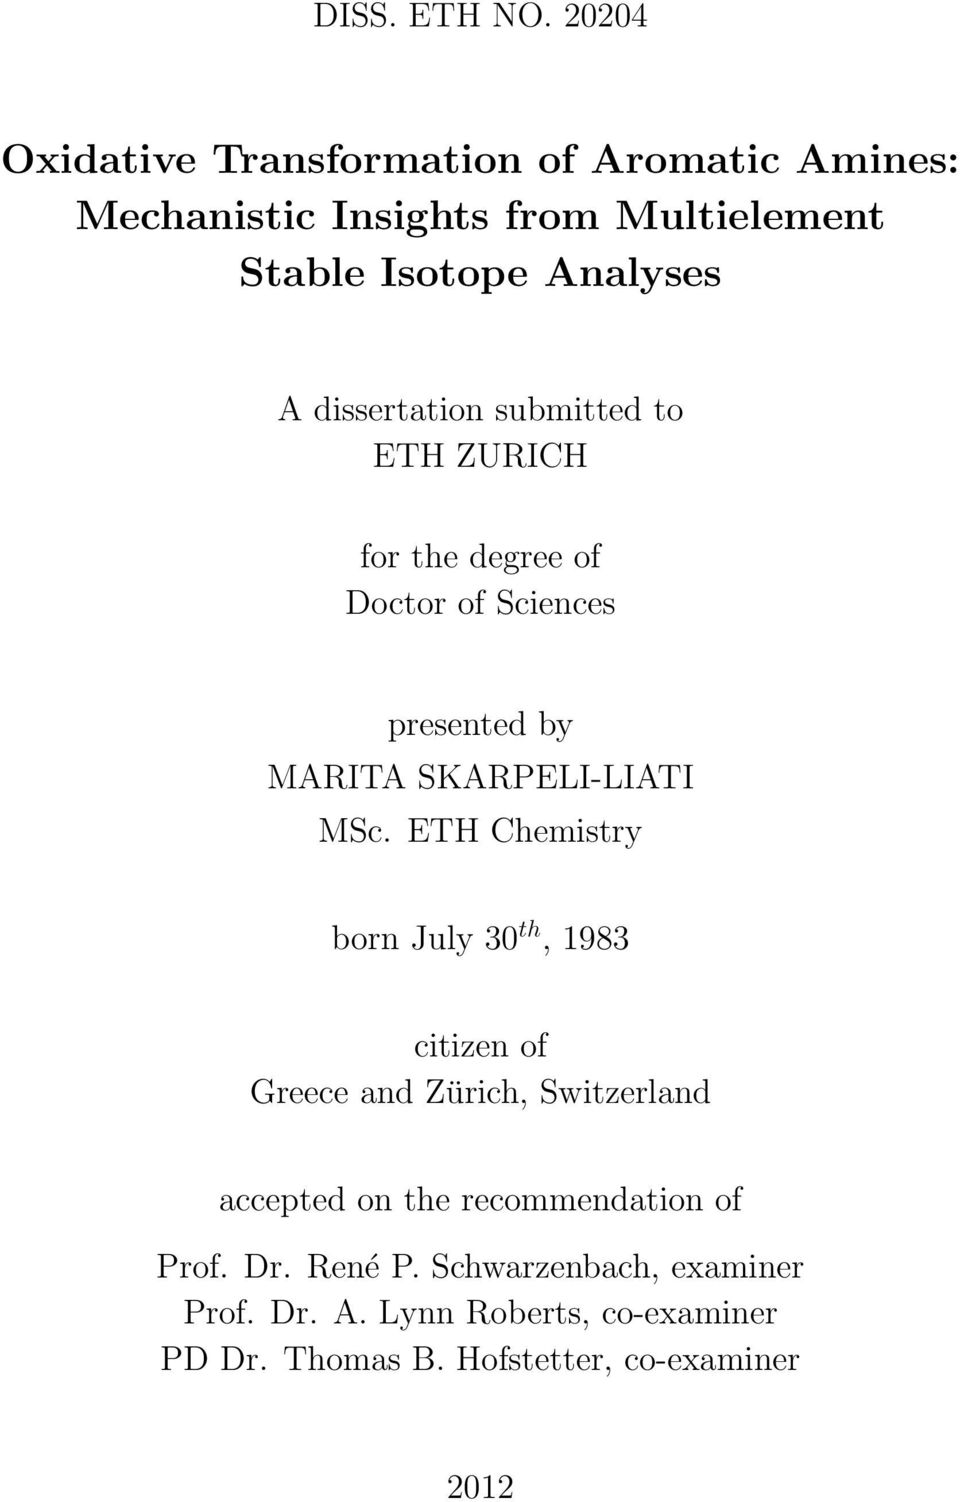 dissertation submitted to ETH ZURICH for the degree of Doctor of Sciences presented by MARITA SKARPELI-LIATI MSc.